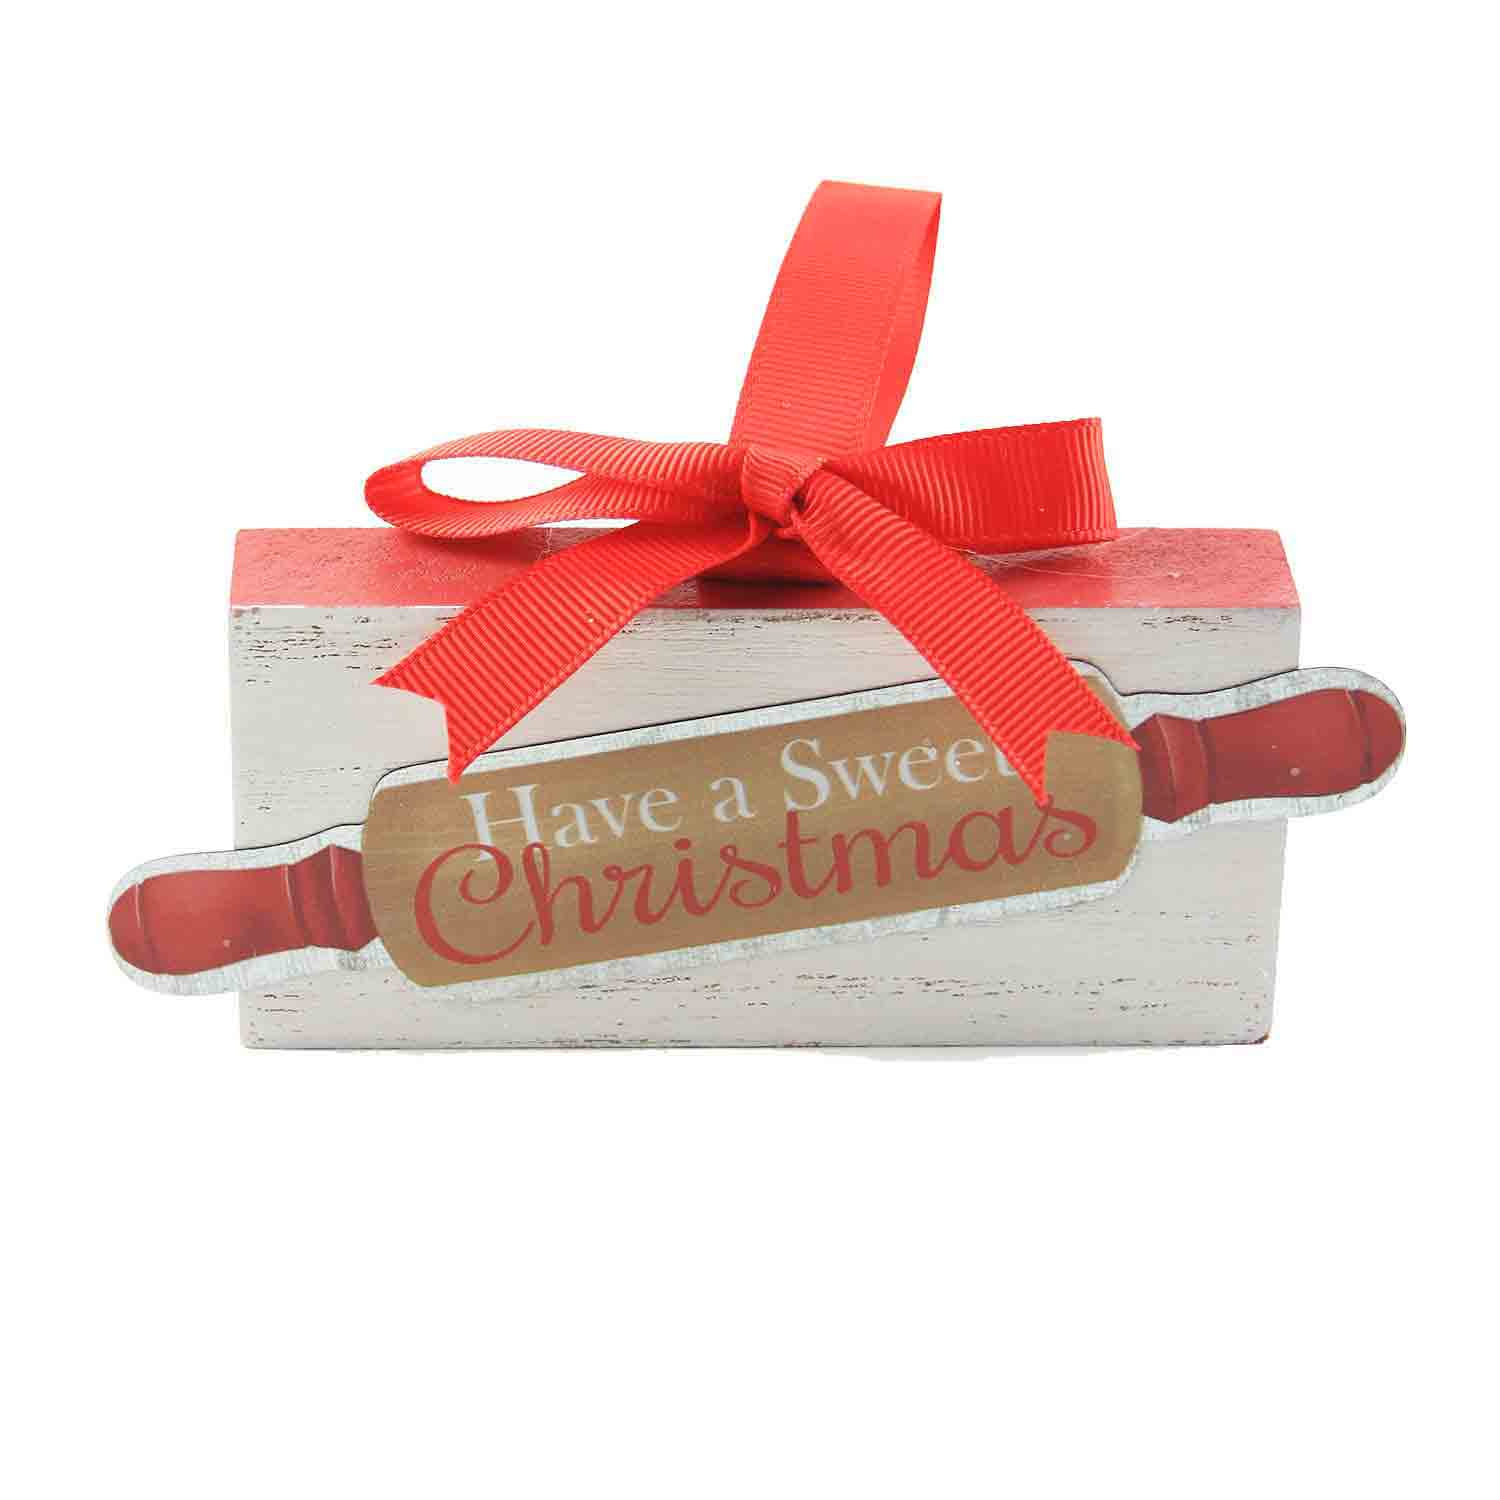 Wooden Block Rolling Pin Ornament